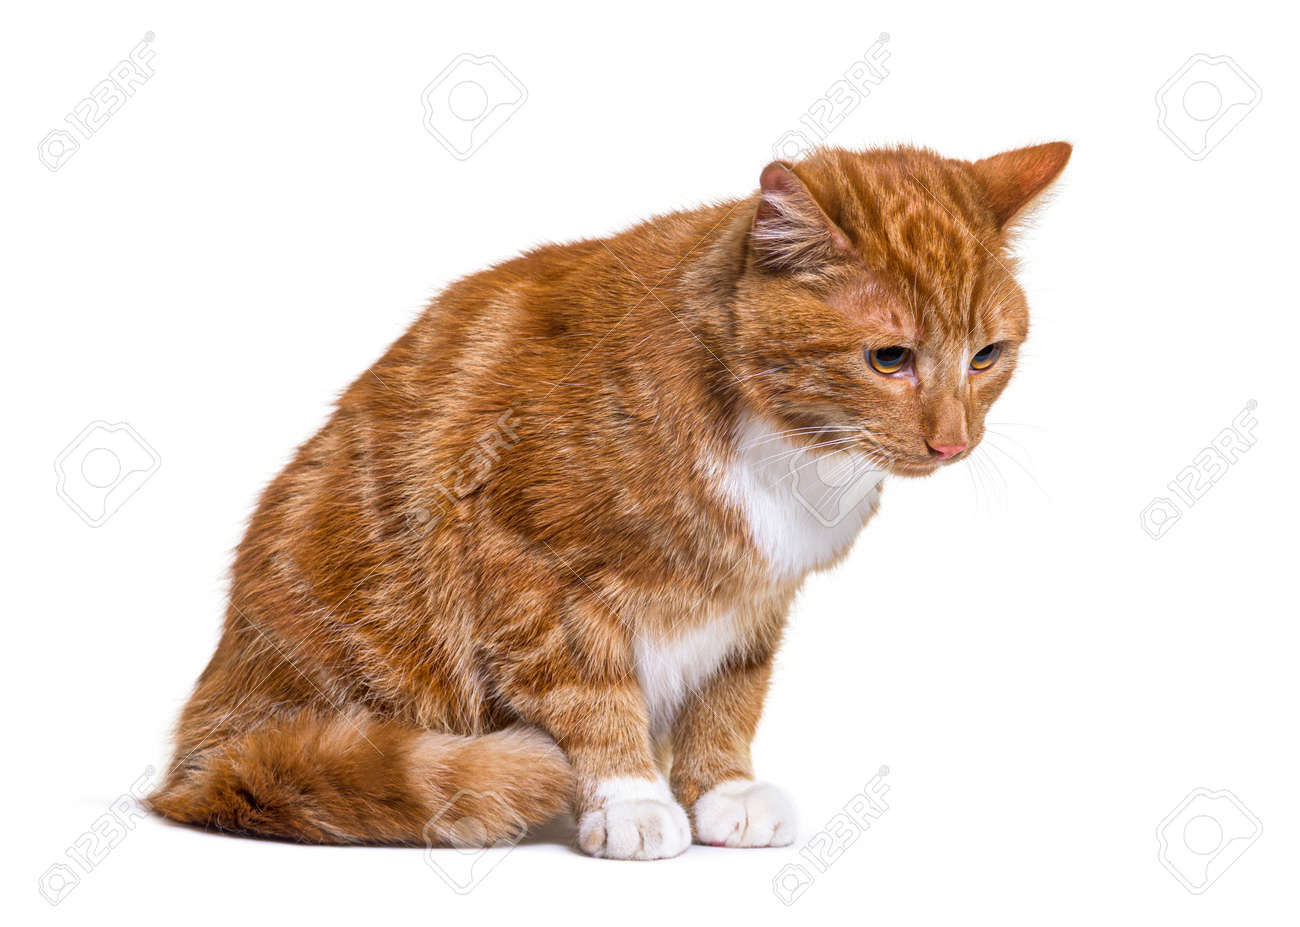 Depressive Ginger cat looking down, isolated - 171049340